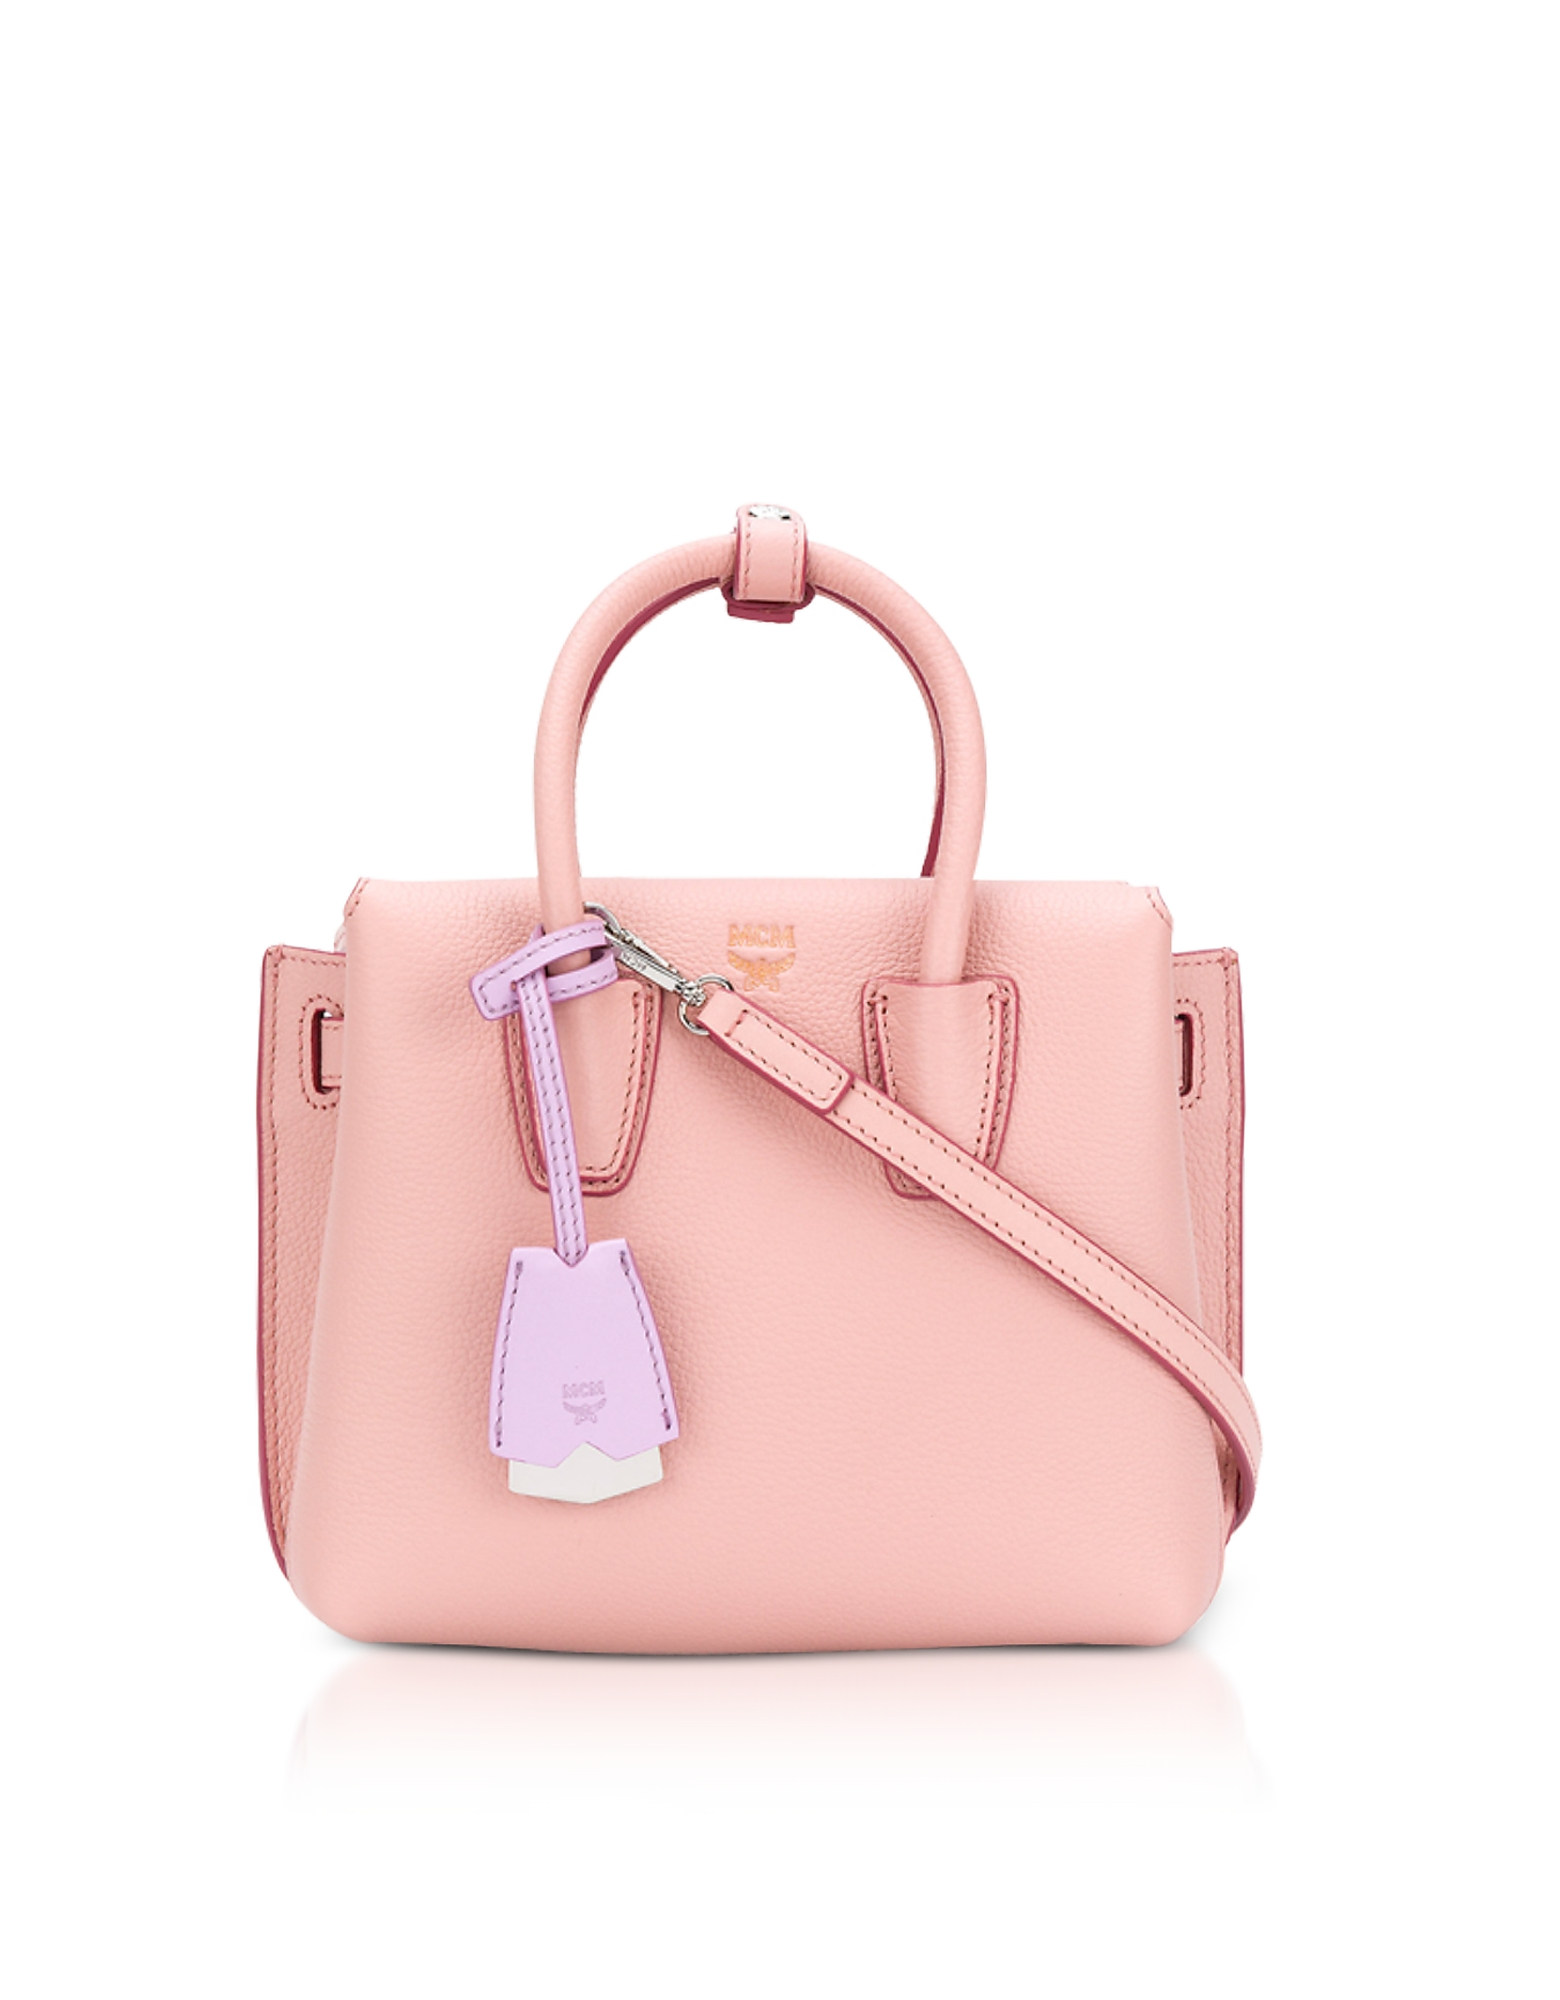 Milla Pink Blush Leather Small Tote Bag